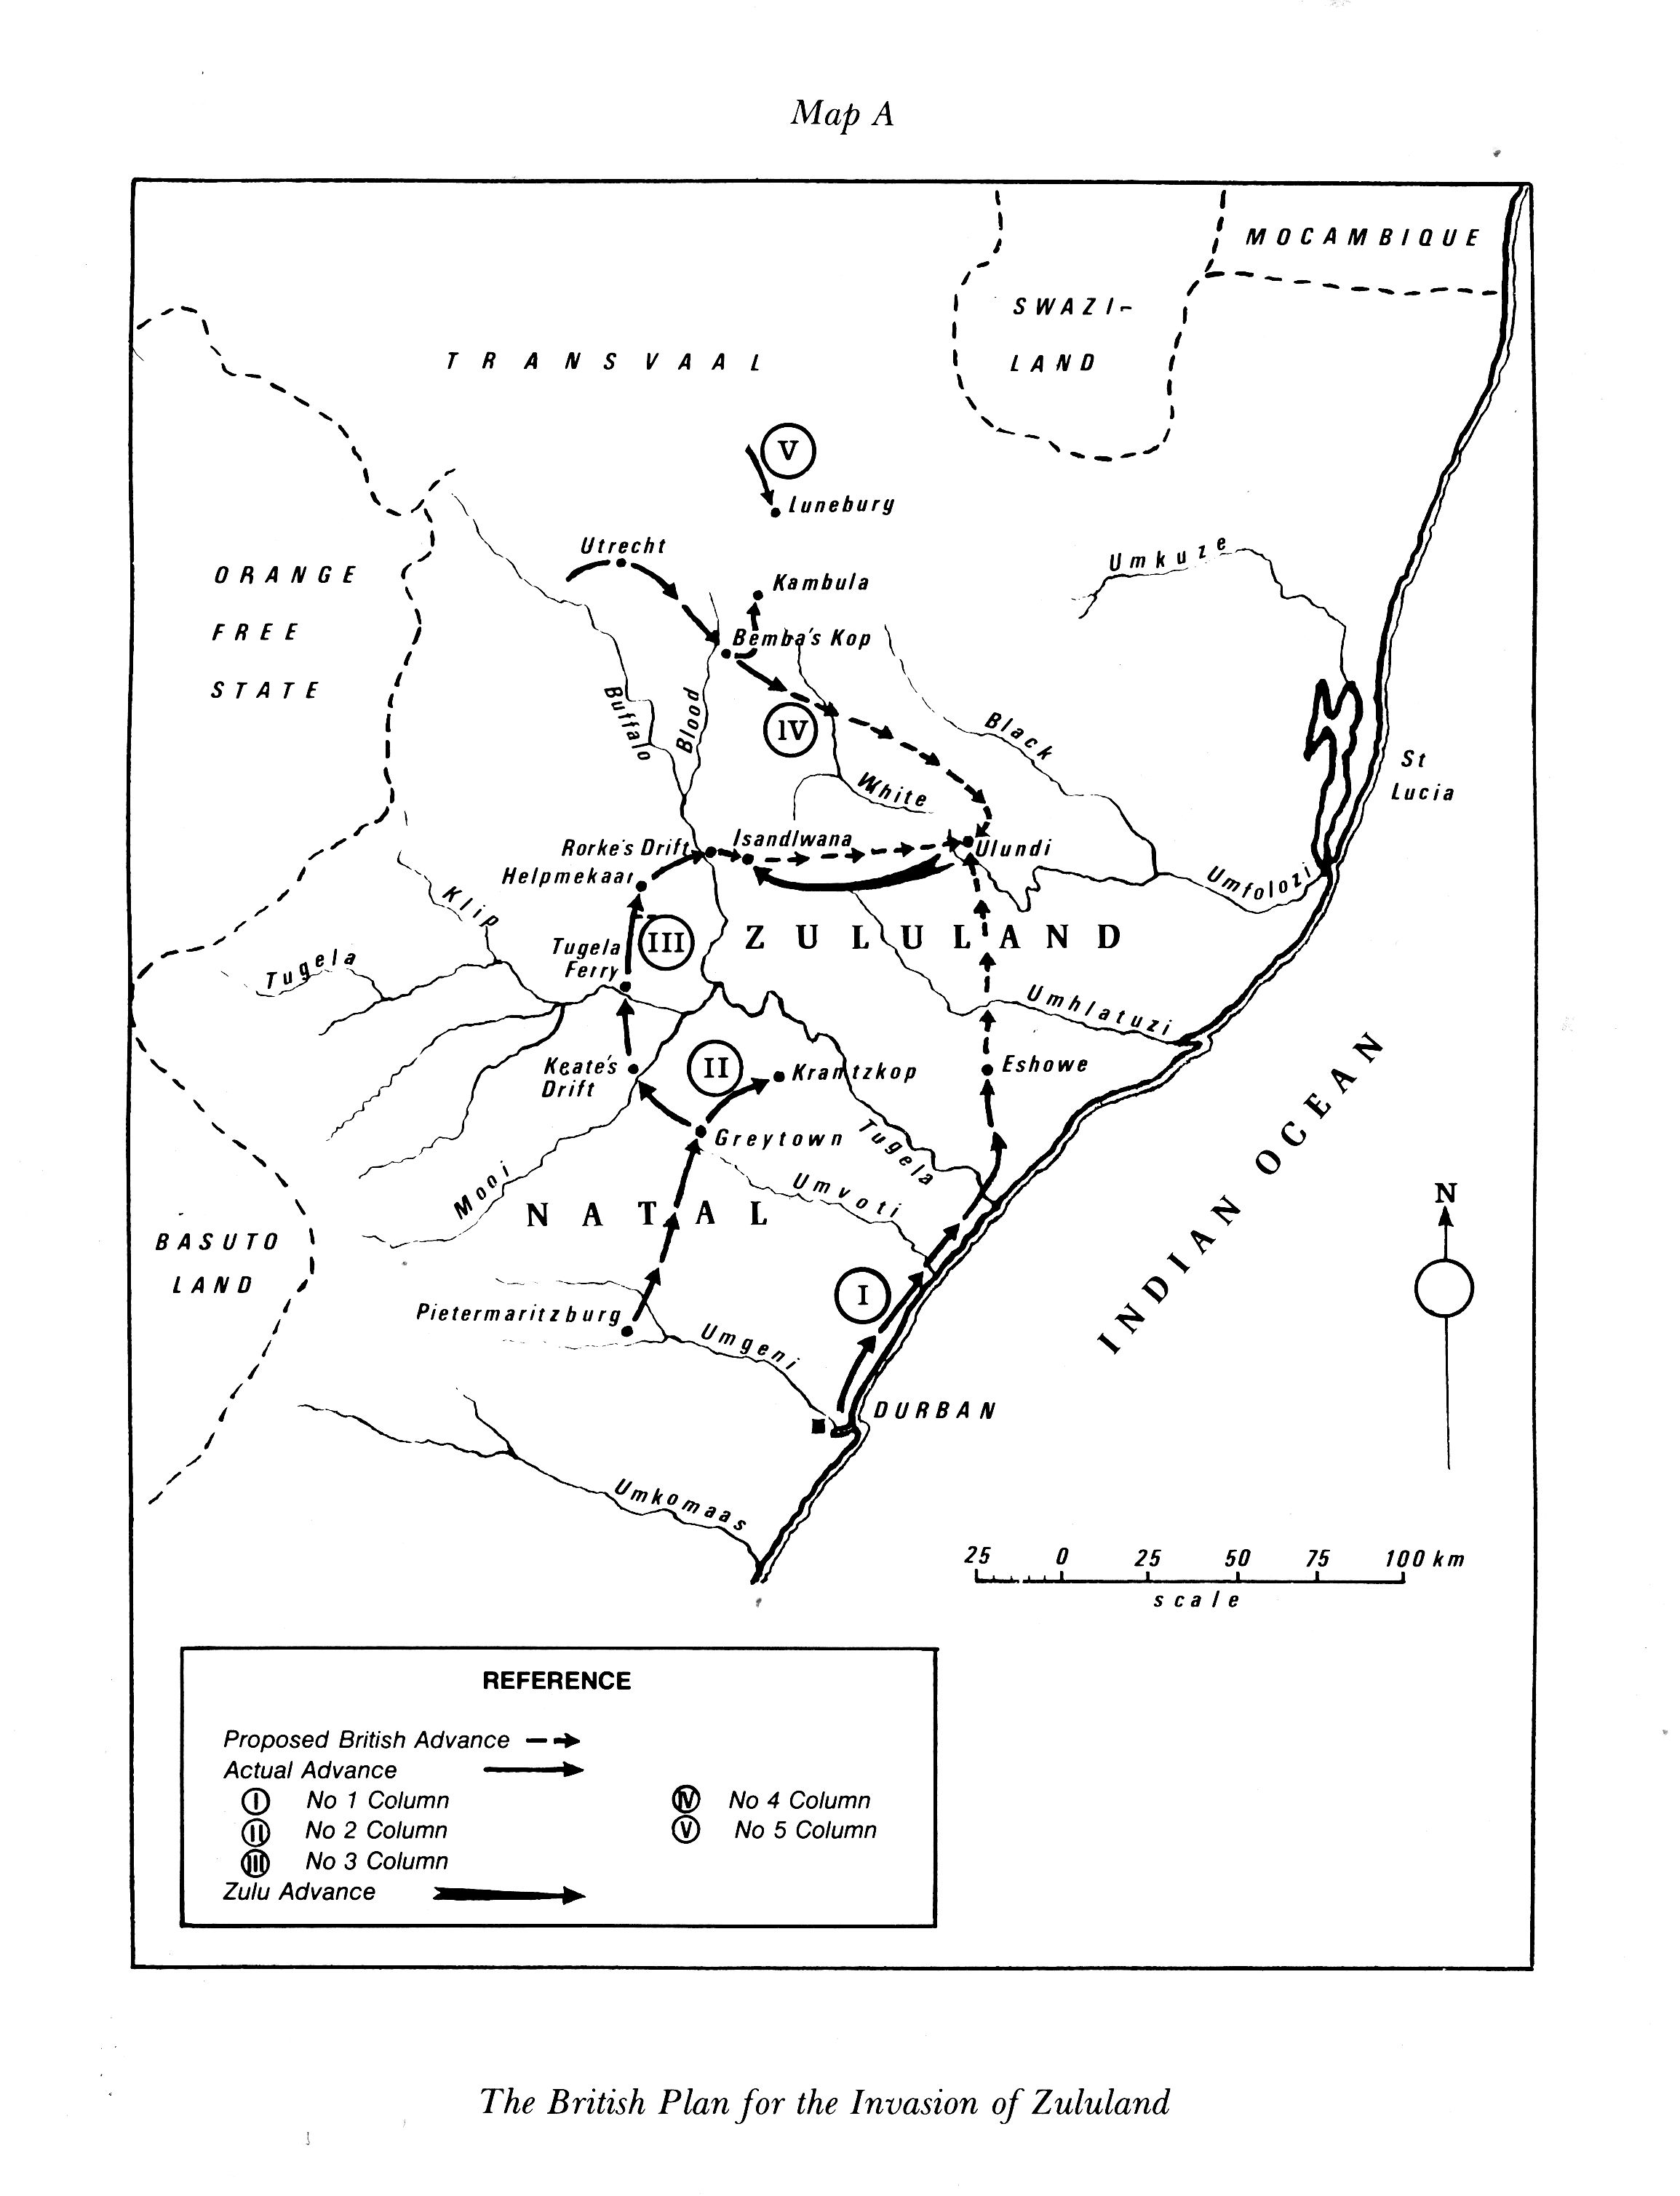 South African Military History Society - Journal - The Anglo-Zulu War of 1879 - Isandlwana and Rorke's Drift